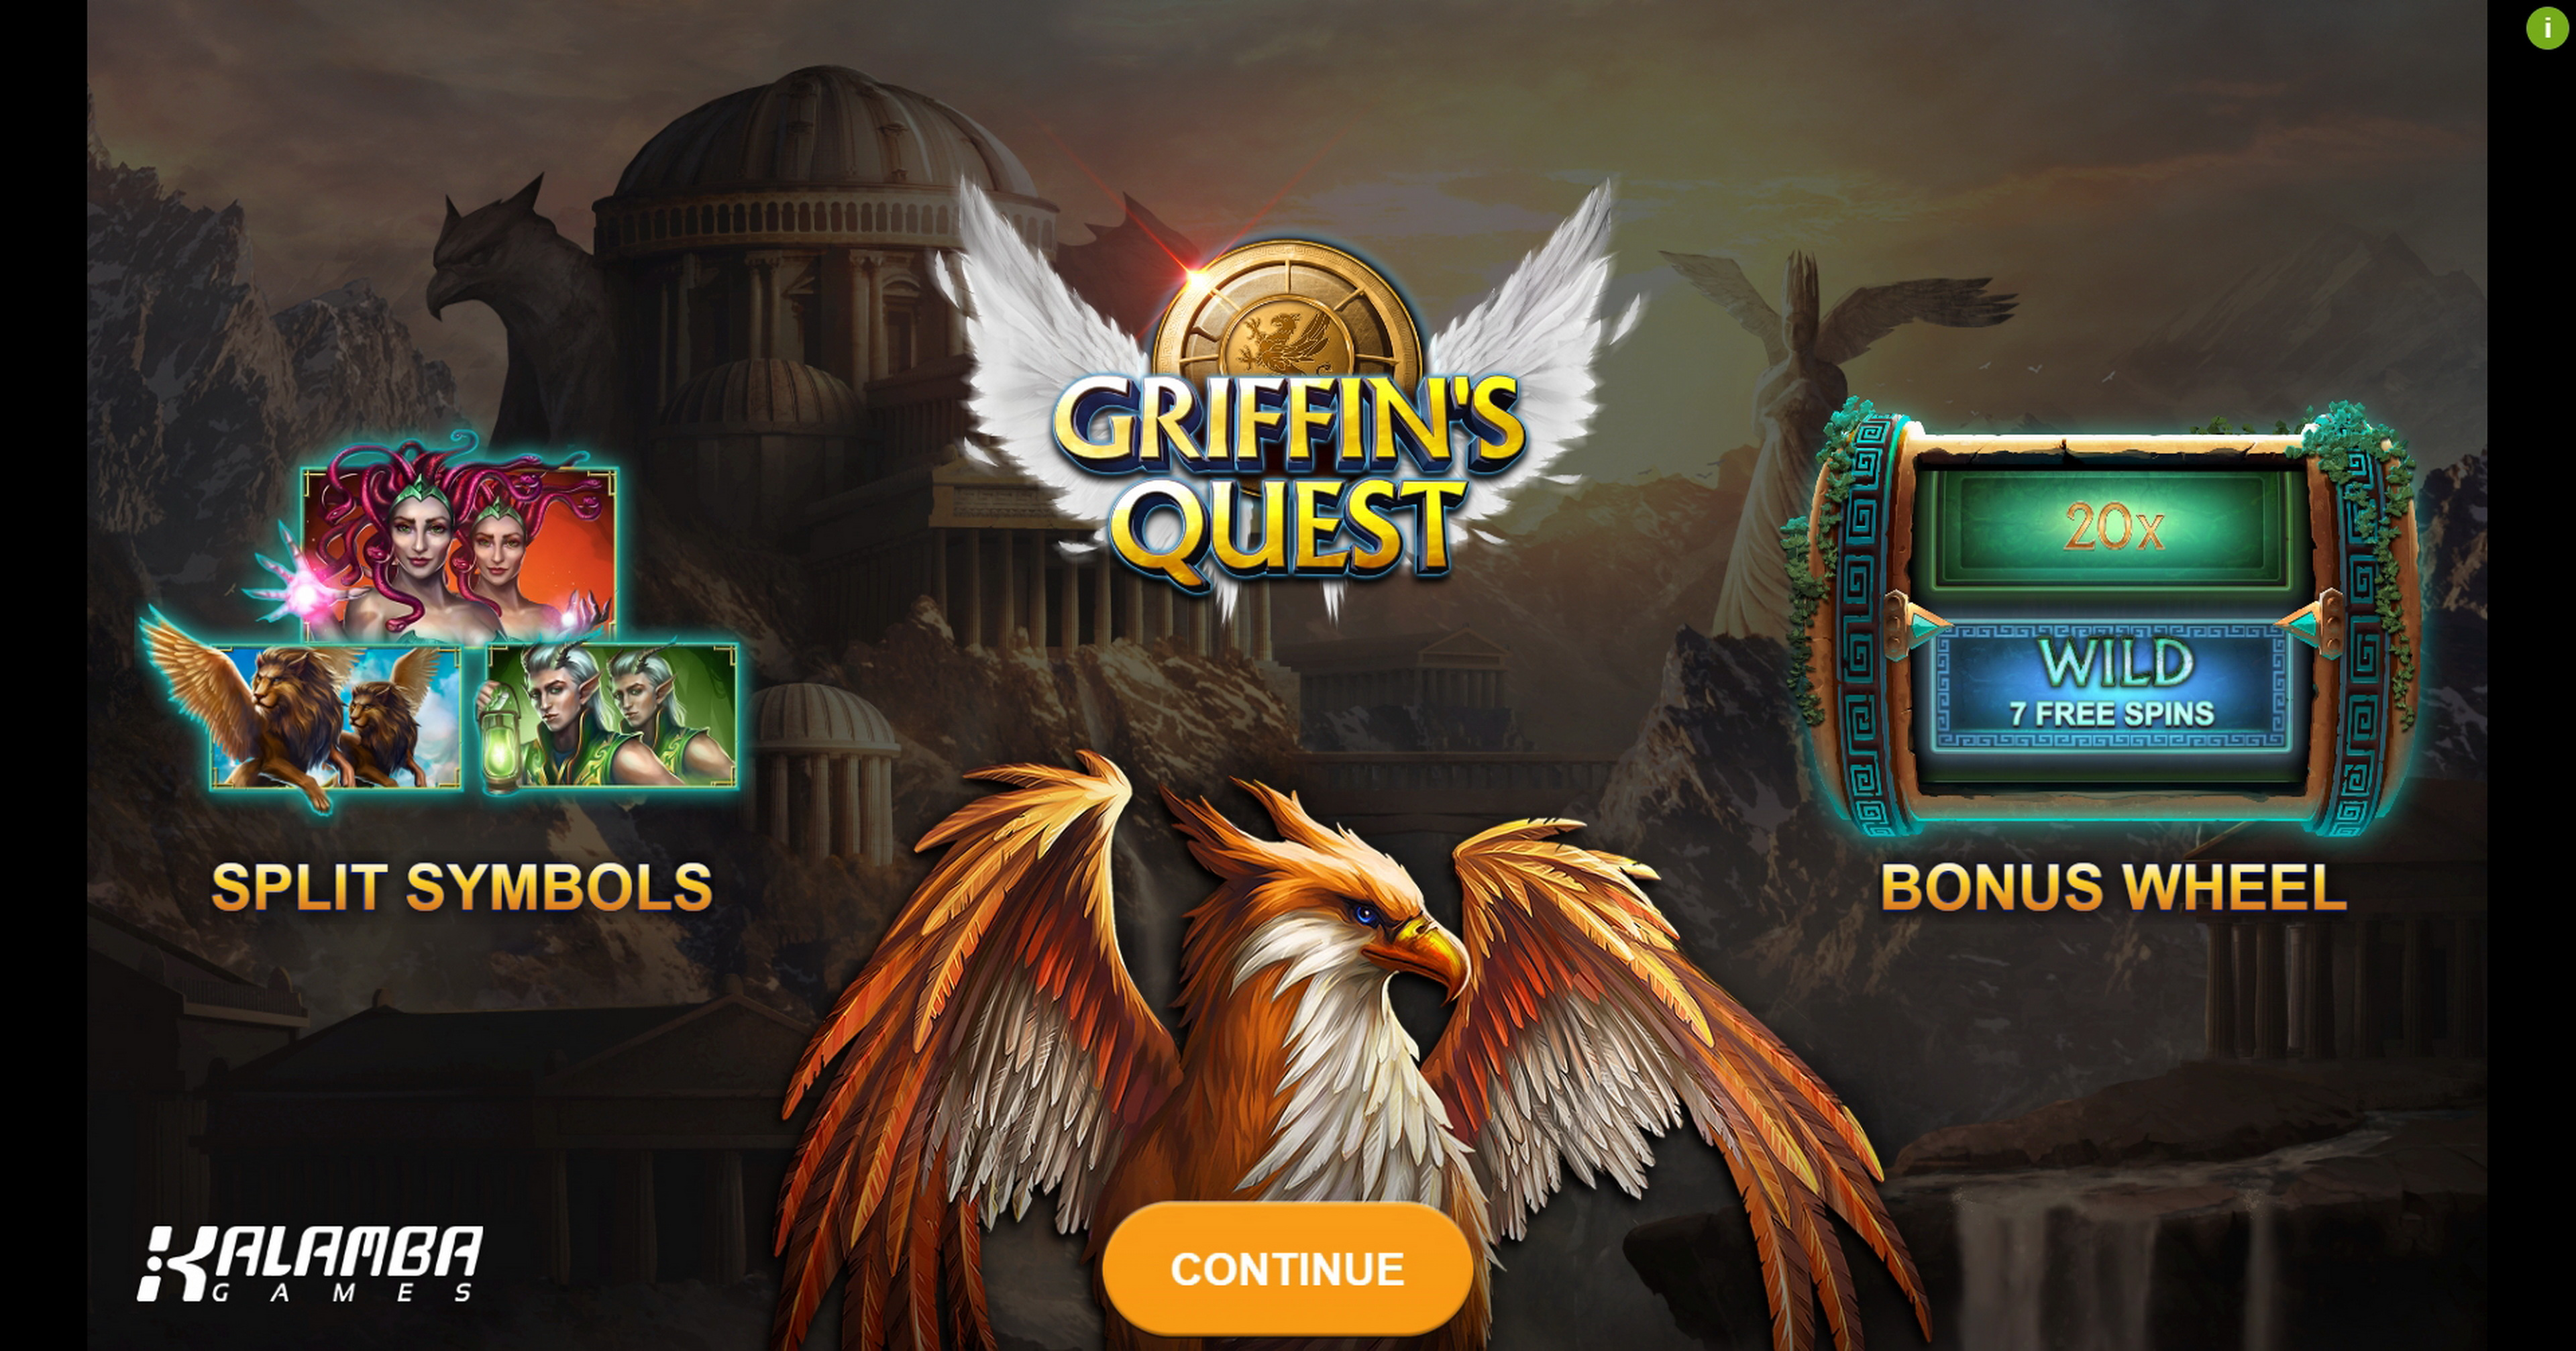 Play Griffins Quest Free Casino Slot Game by Kalamba Games